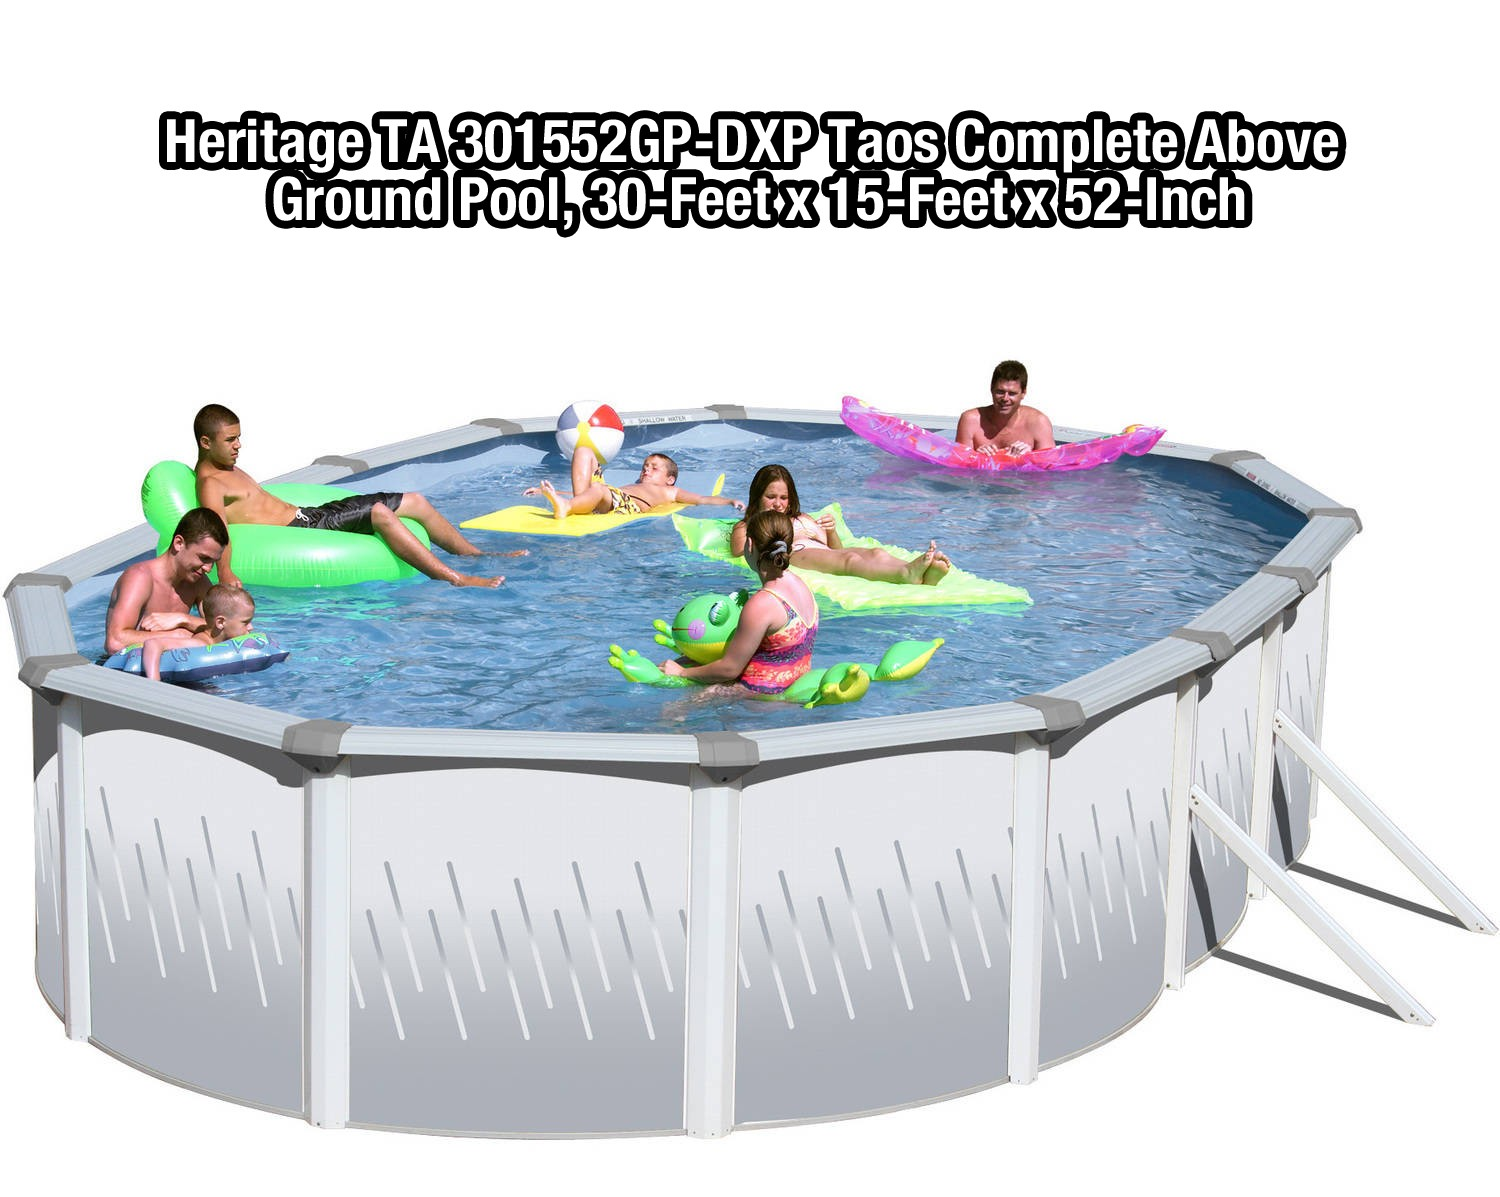 Heritage-TA-301552GP-DXP-Taos-Complete-Above-Ground-Pool-30-Feet-x-15-Feet-x-52-Inch